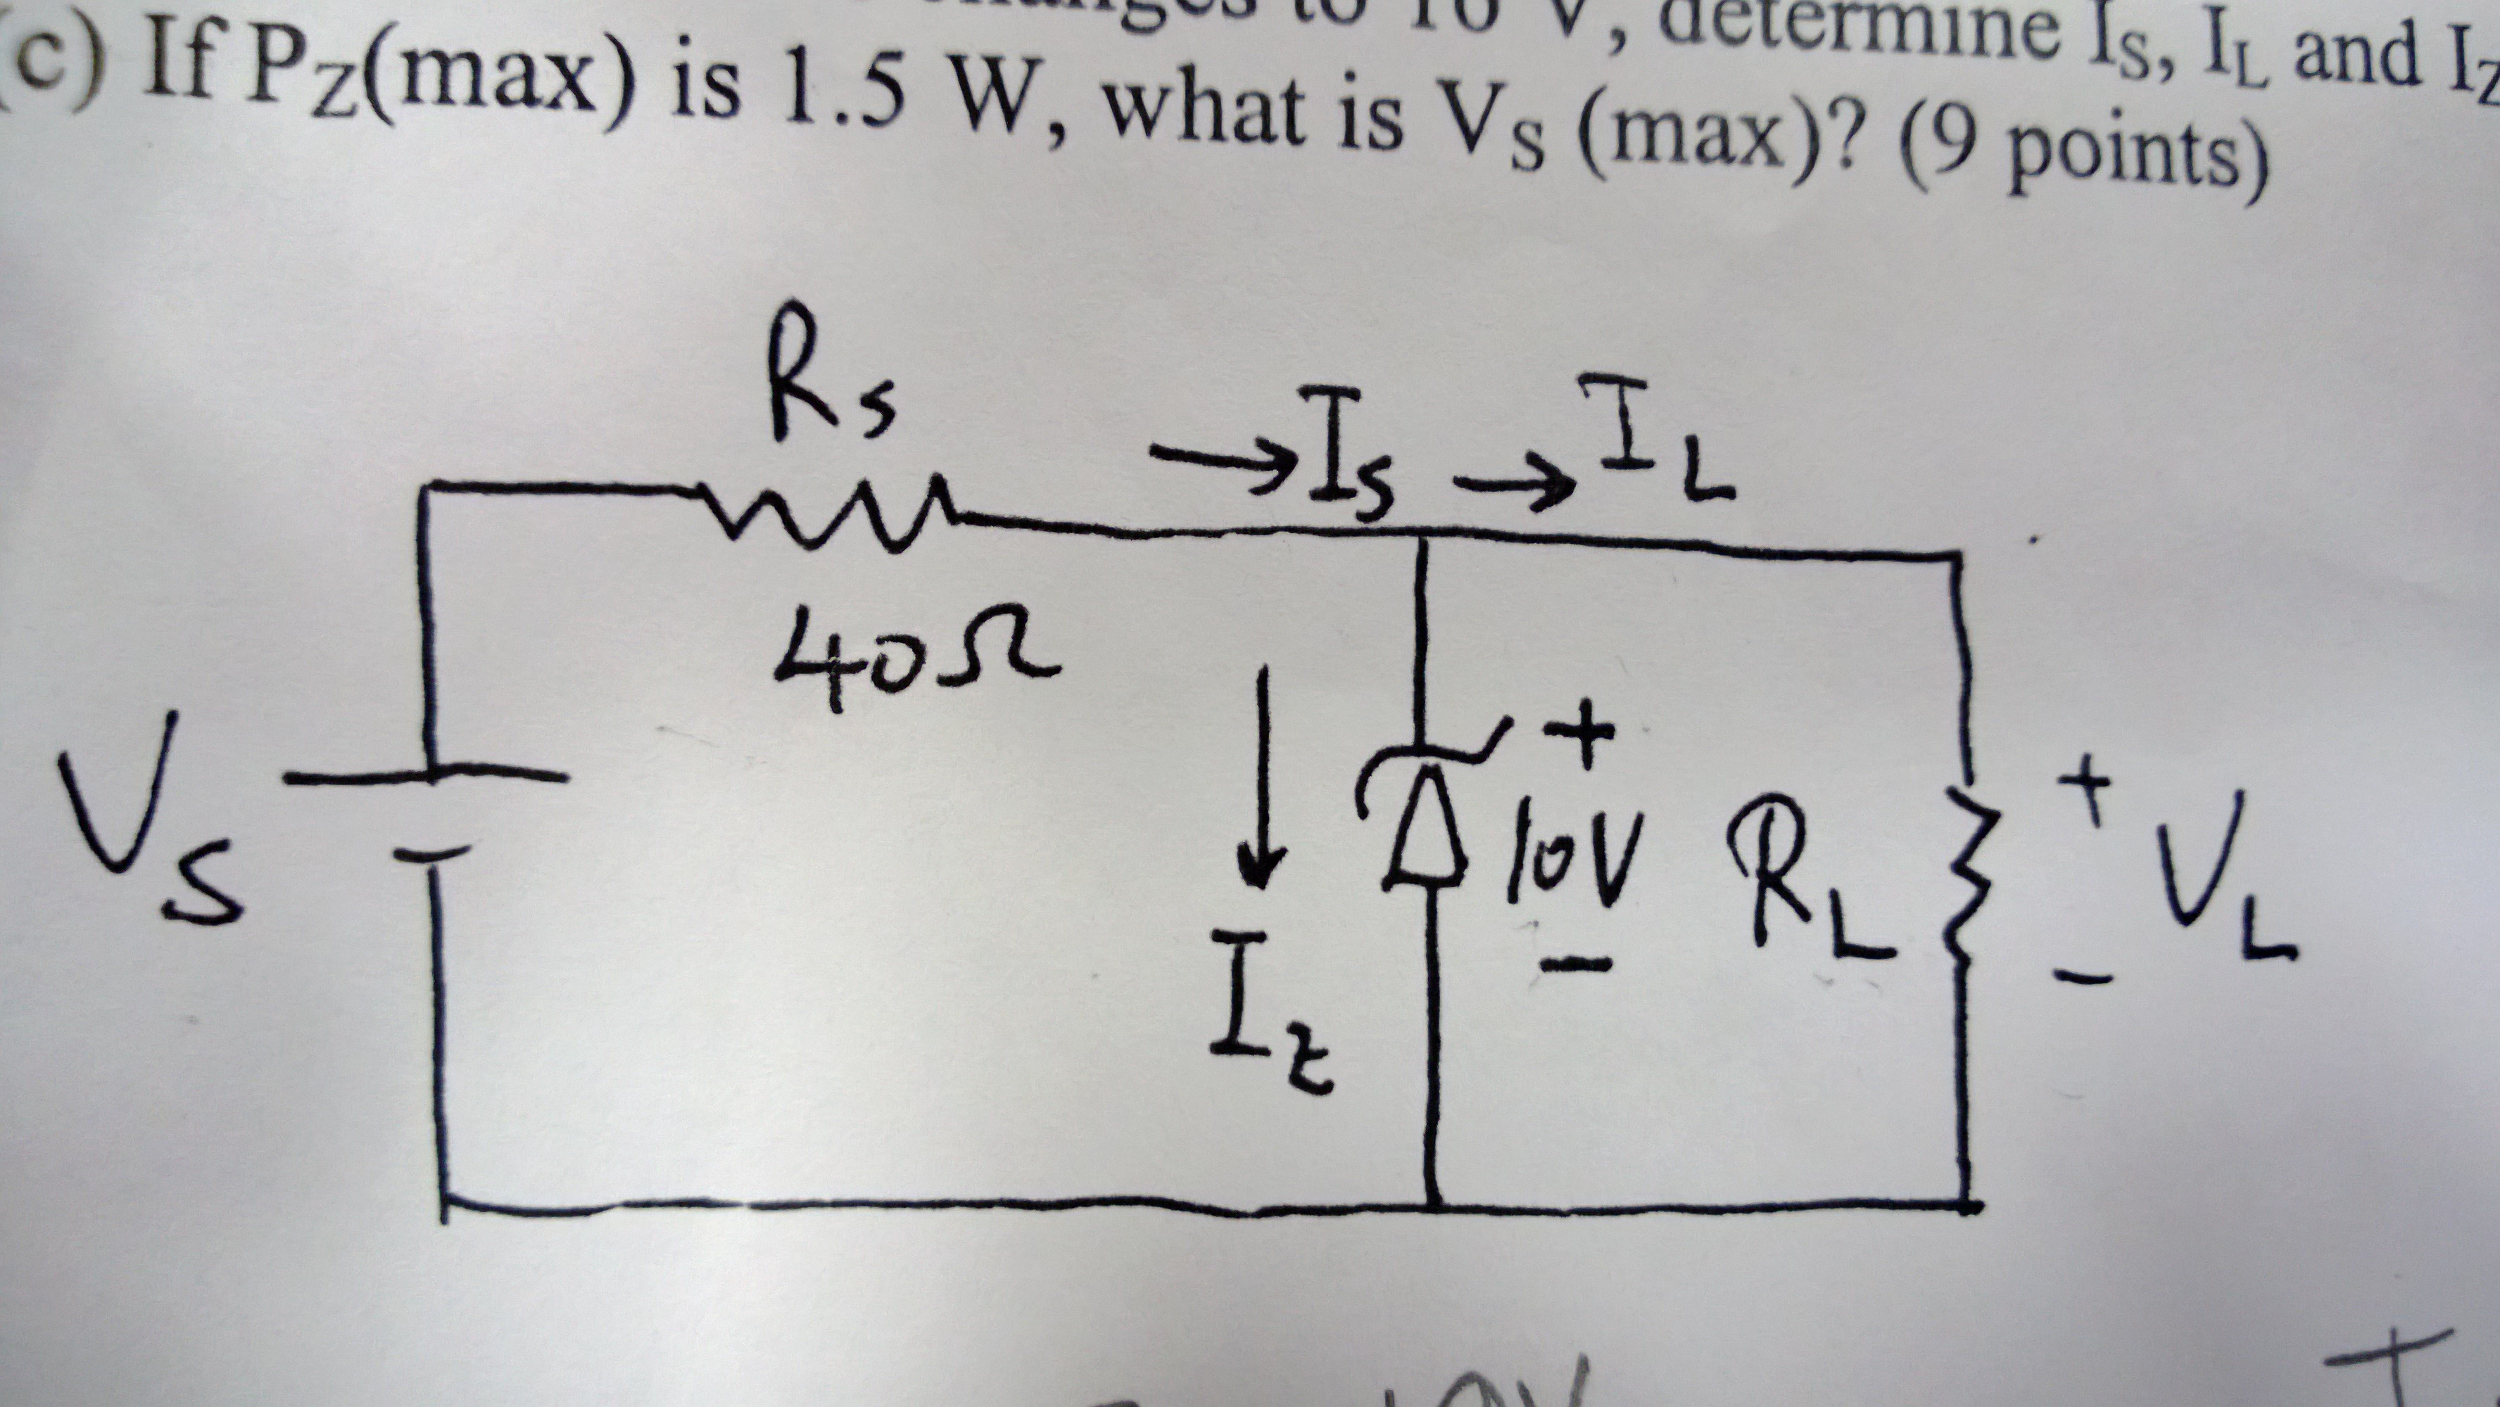 Consider the circuit. Vz=10 V and Rl=100 ohm (a) I